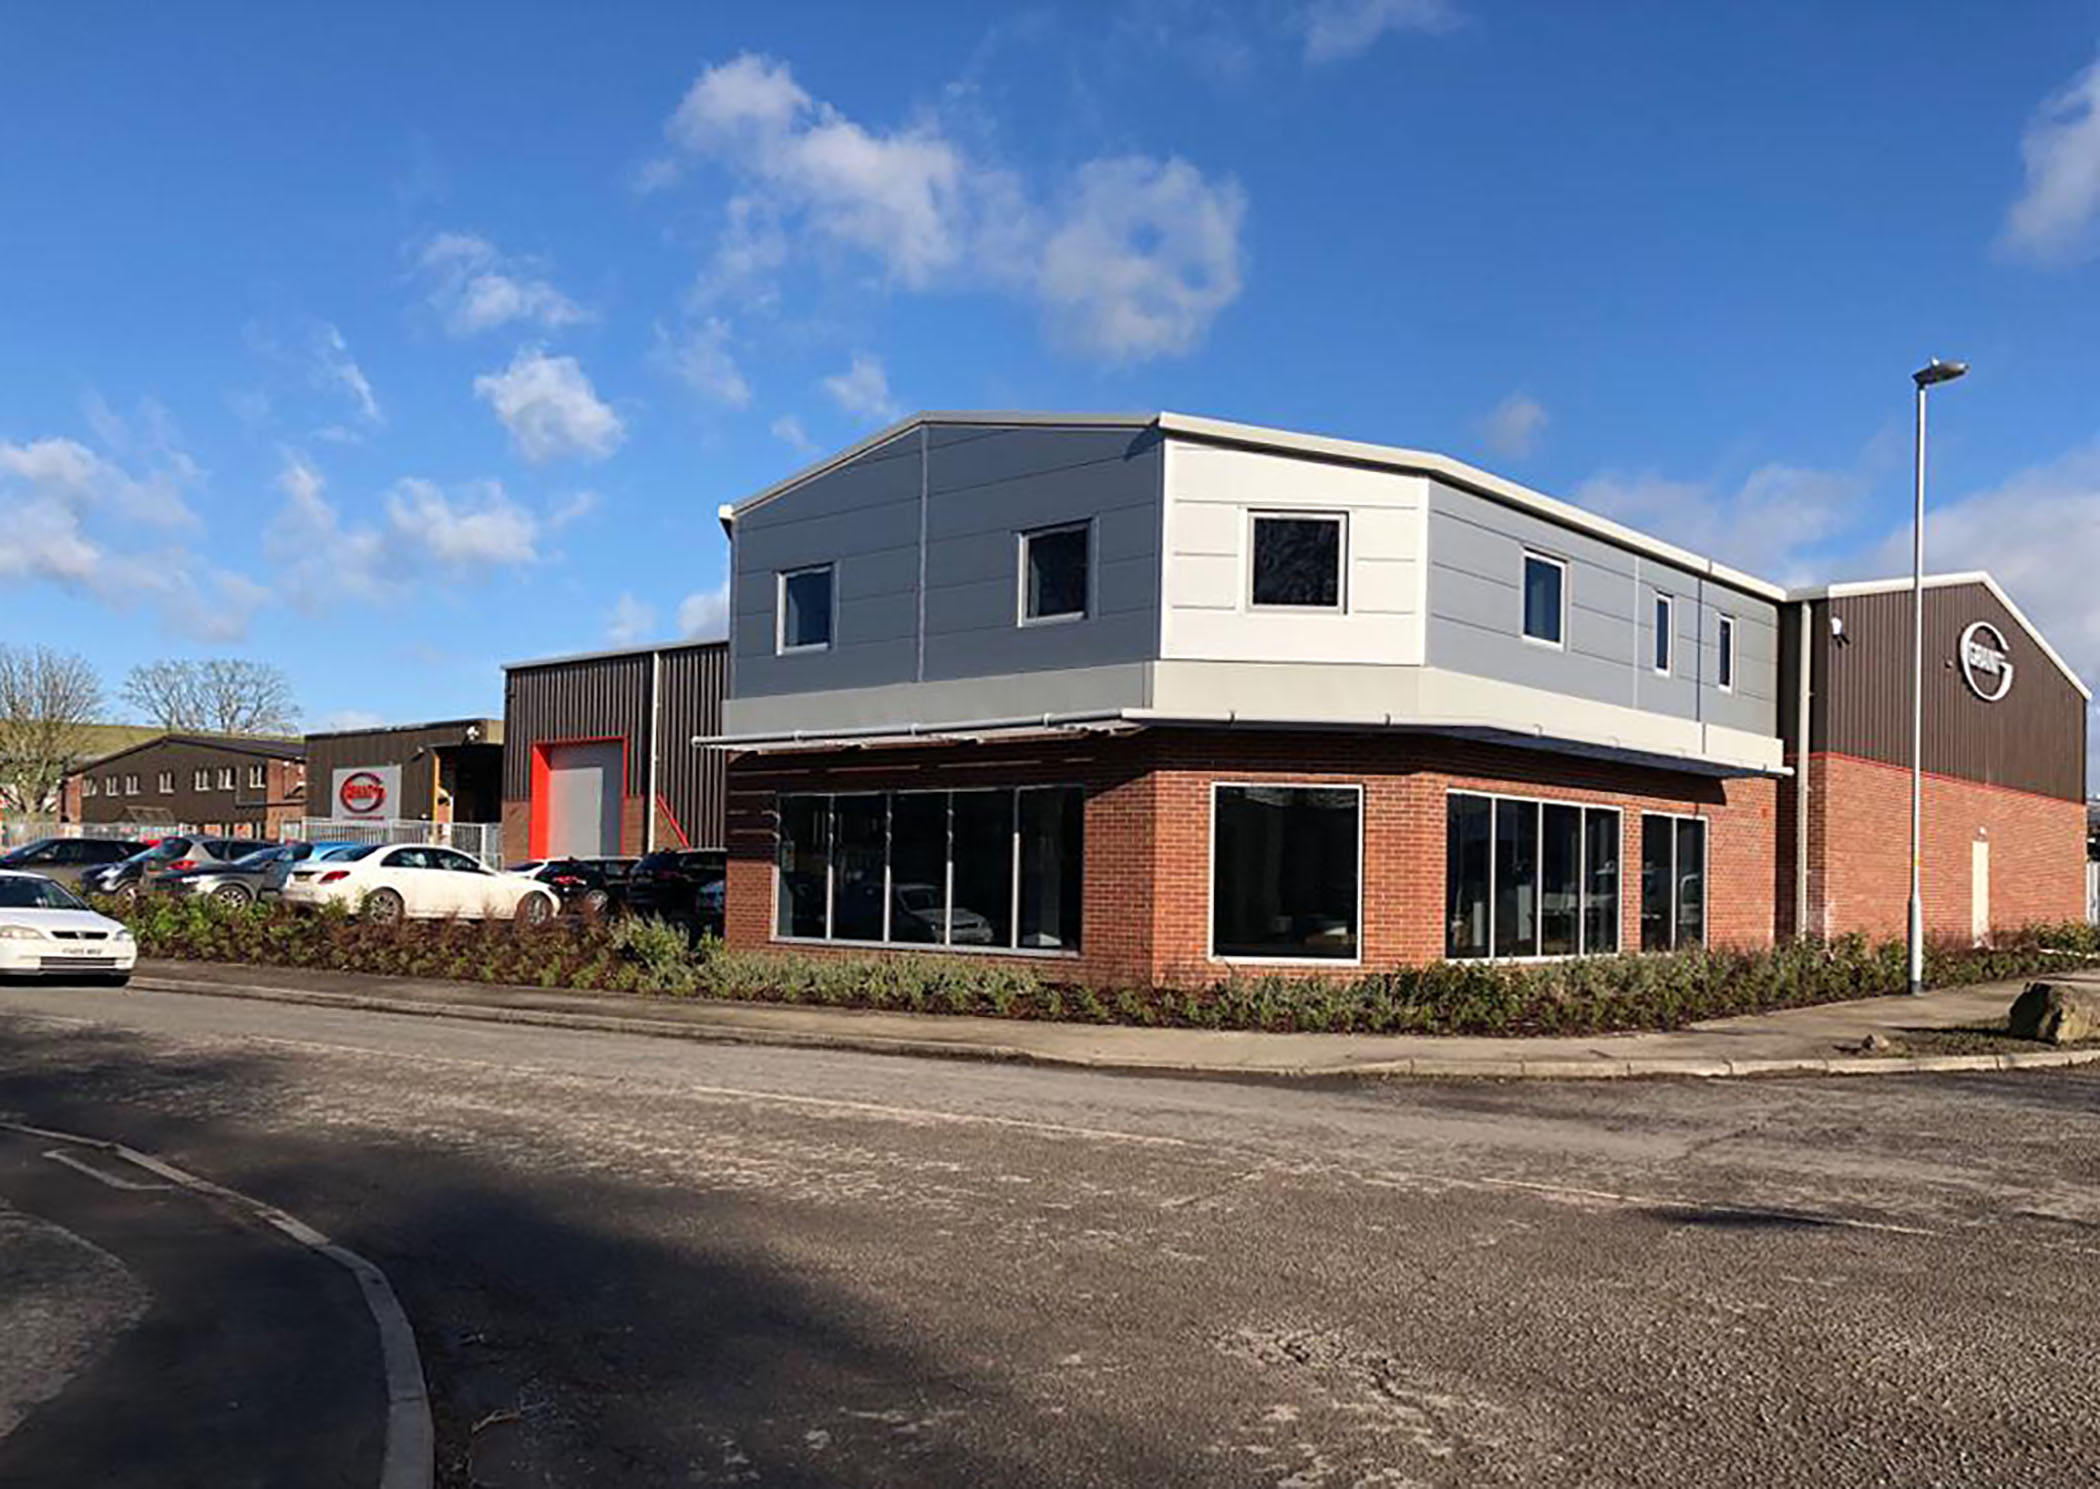 Grant UK expands HQ site with new warehouse, meeting suites and showroom